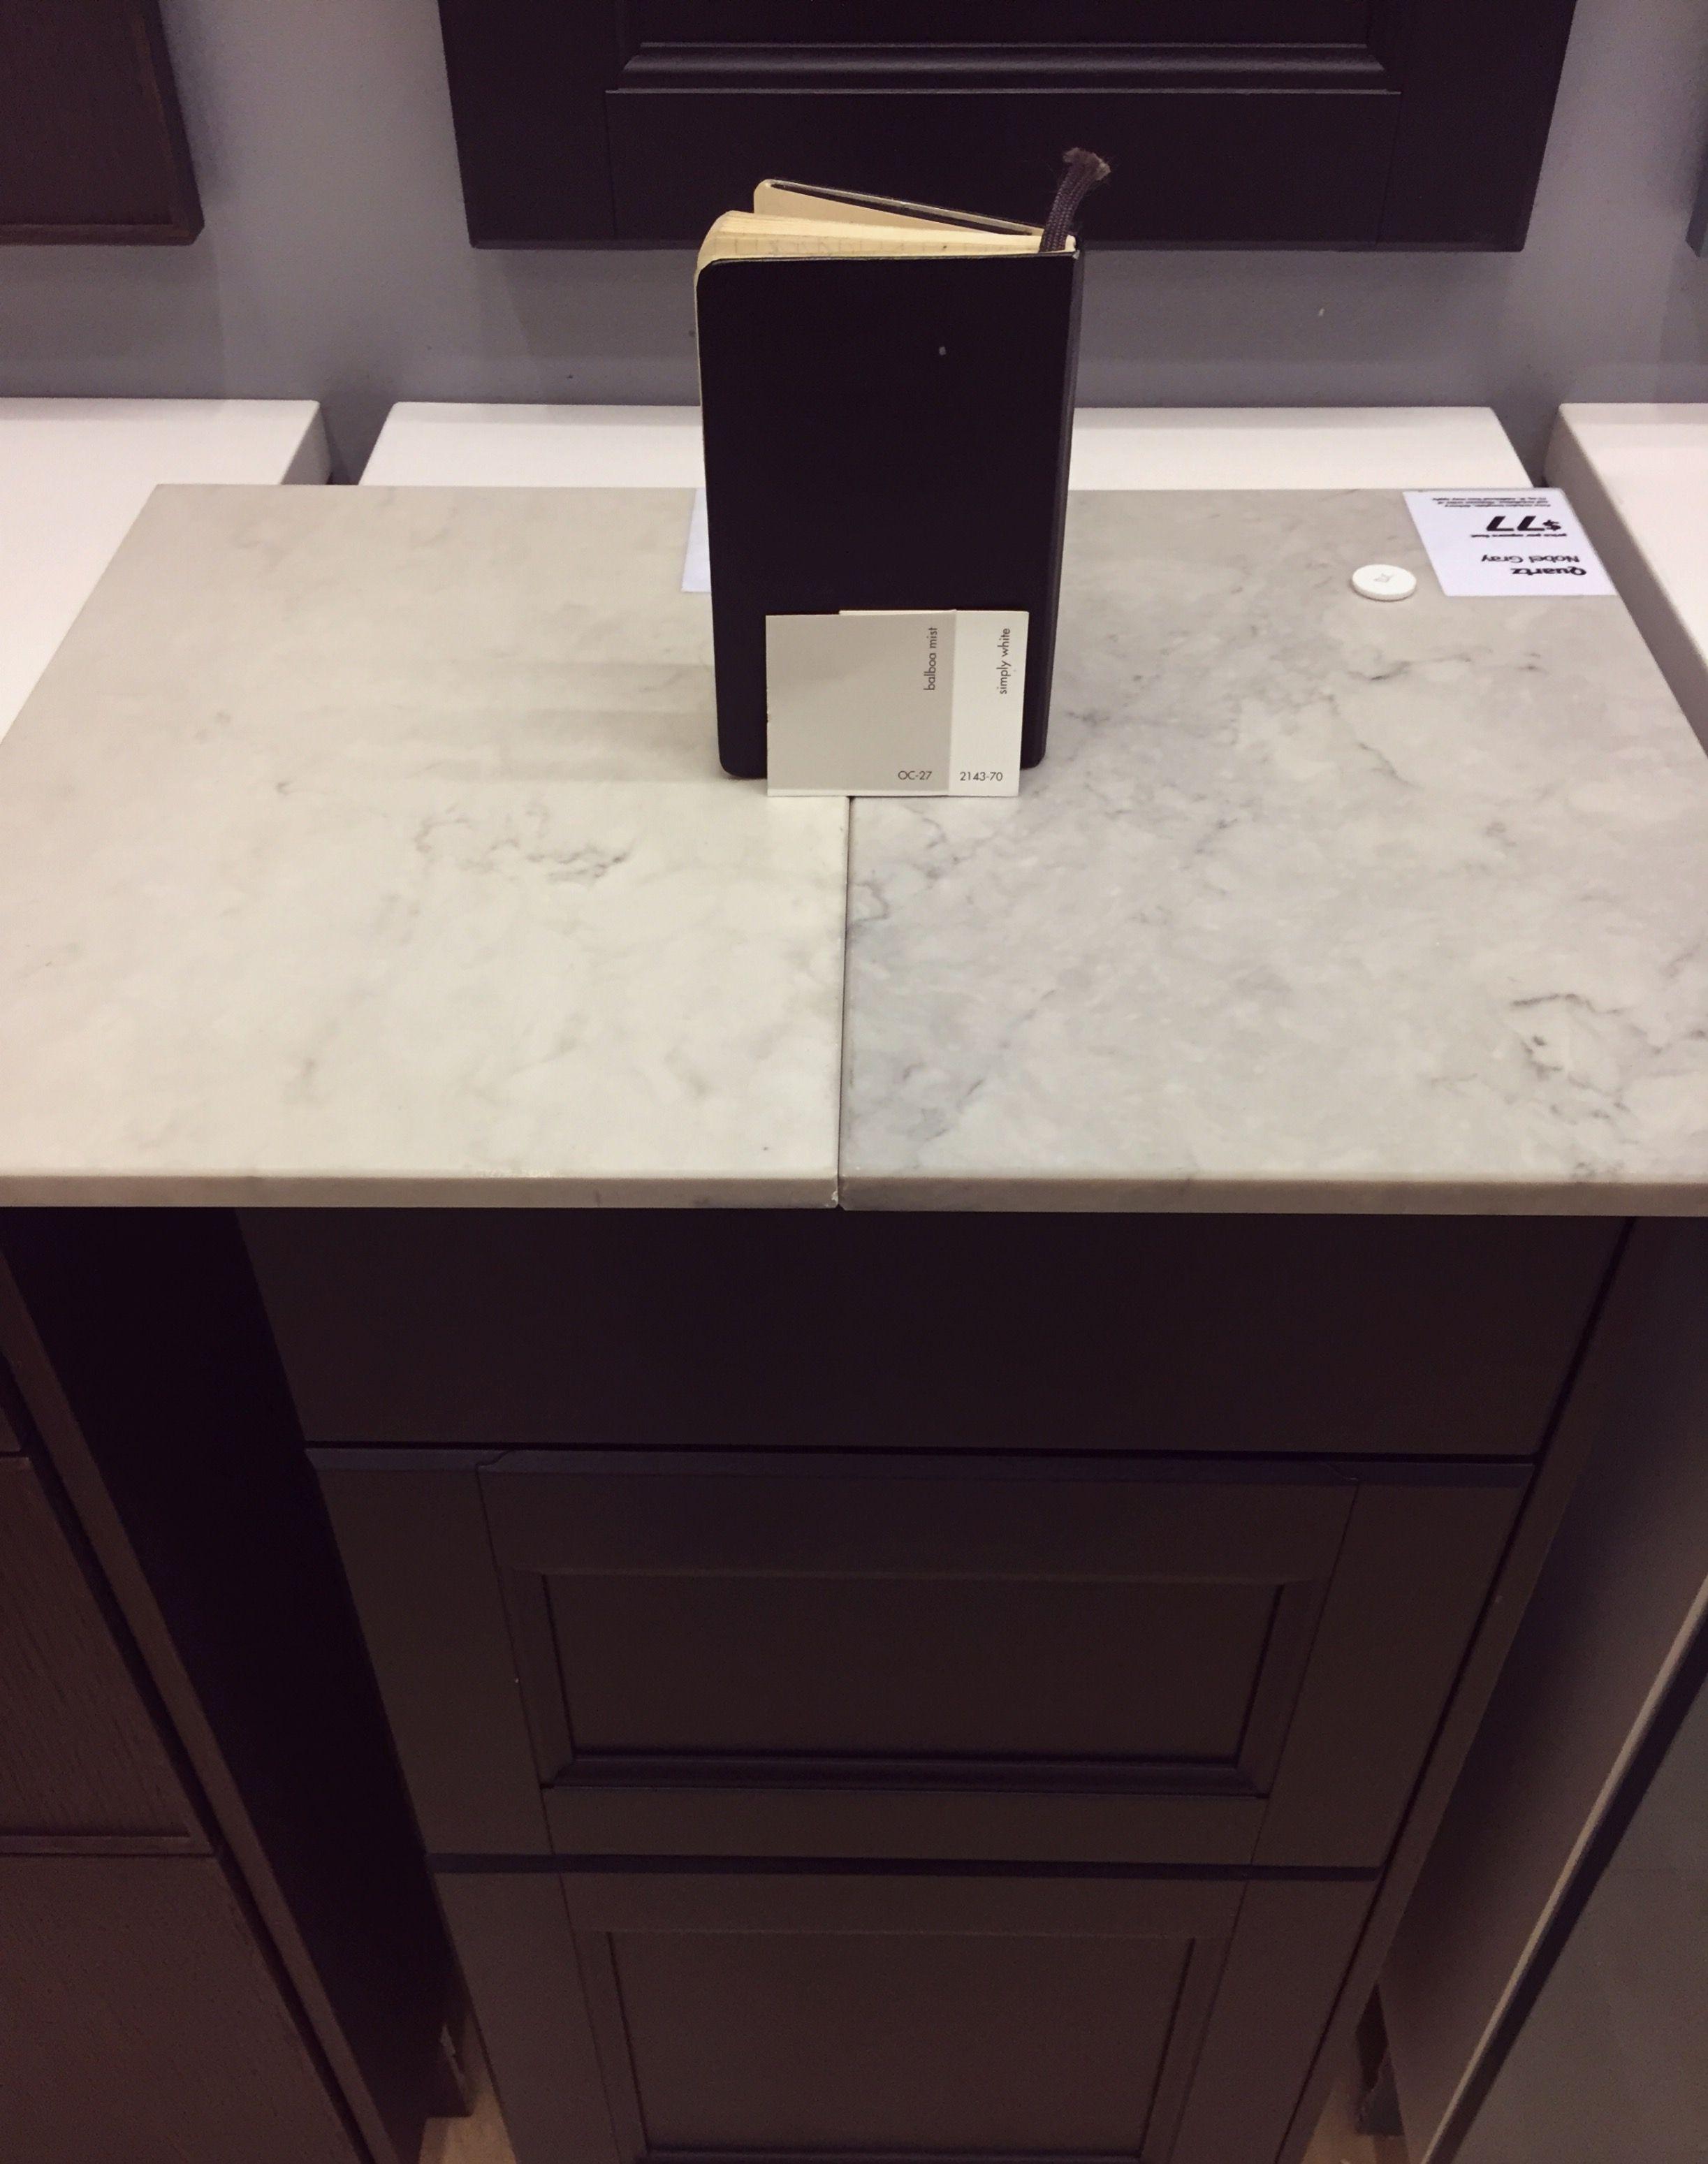 Caesarstone Countertop Options At Ikea London Grey Vs Nobel Grey With Laxarby Cabinets Whole Ikea Quartz Countertop Replacing Kitchen Countertops Countertops